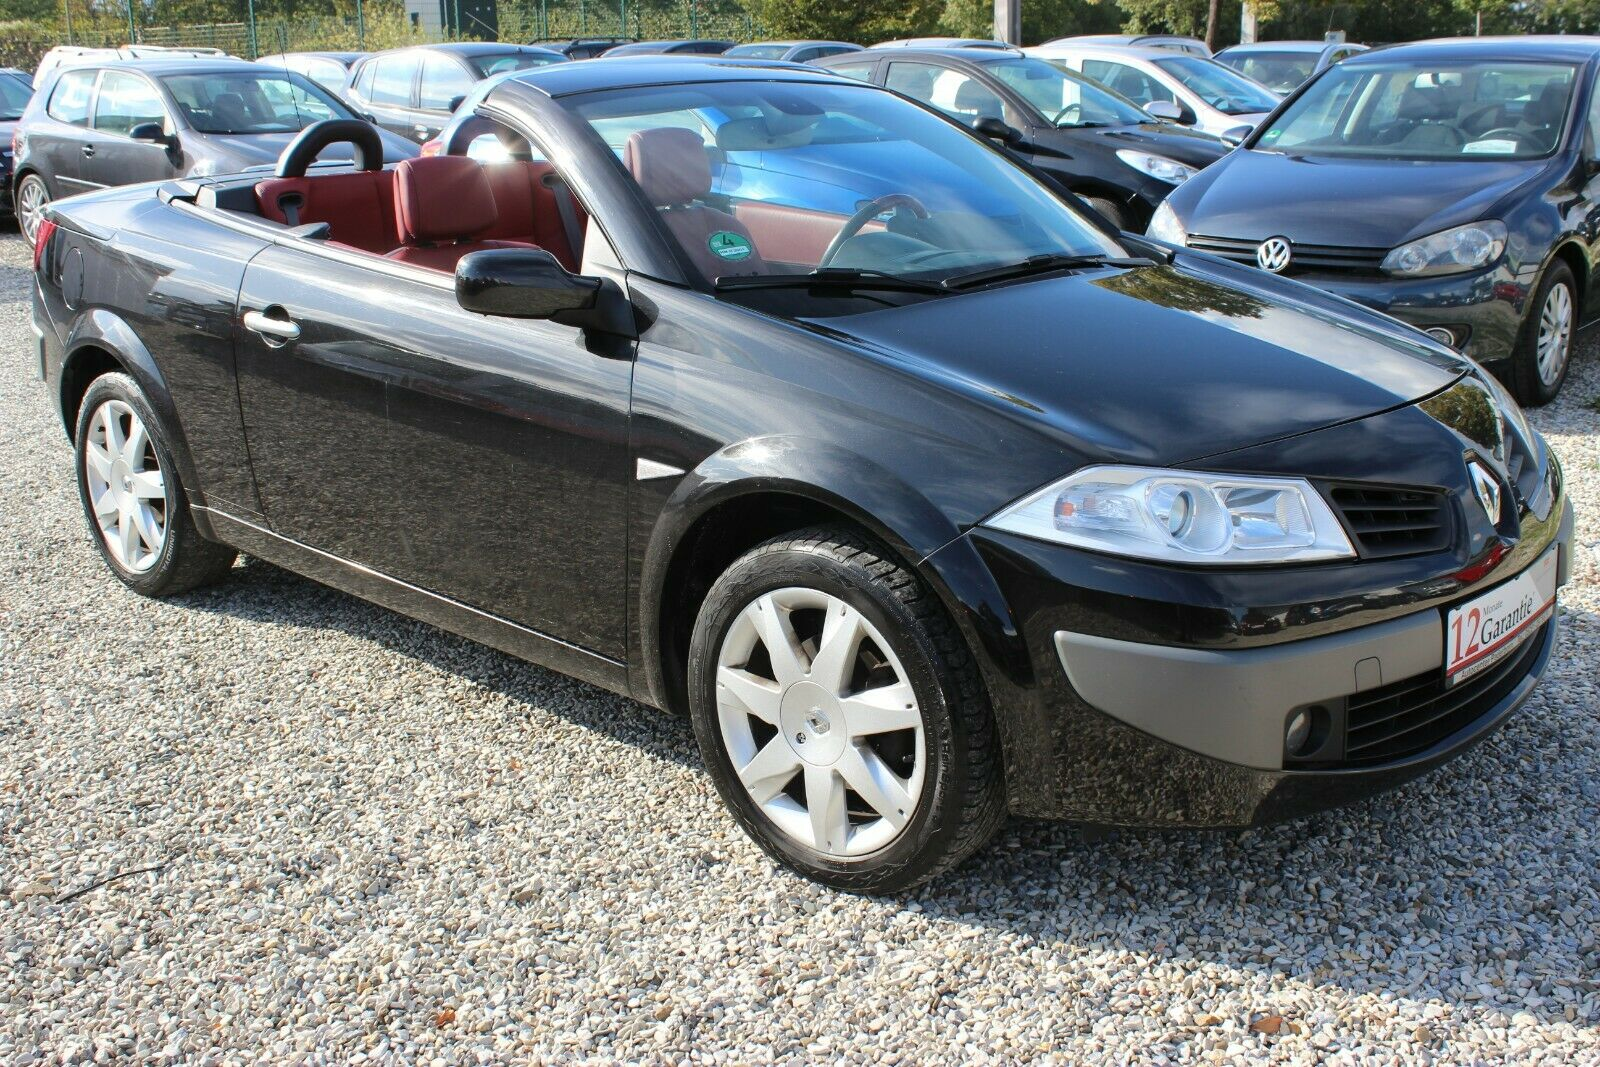 RENAULT Megane II Coupe/Cabrio2,0 -LEDER-PDC-TOP ZUSTAND